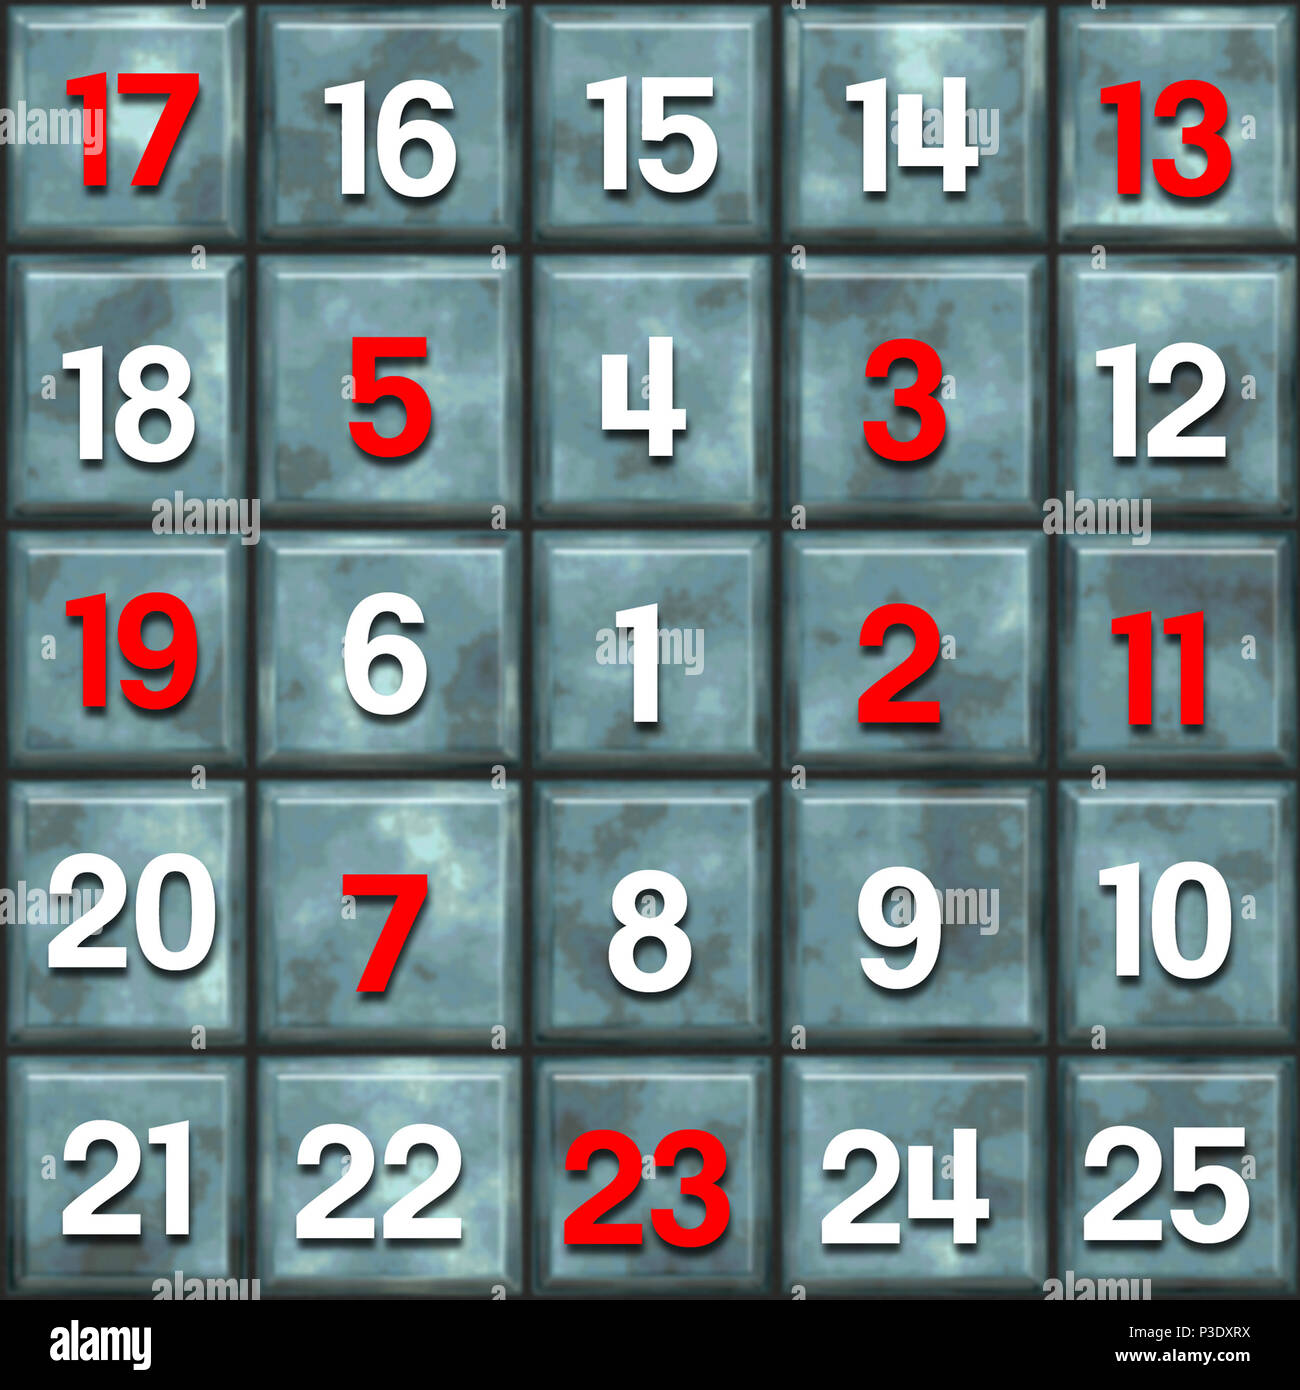 table in spiral sequence of digits with the first 9 prime numbers - Stock Image